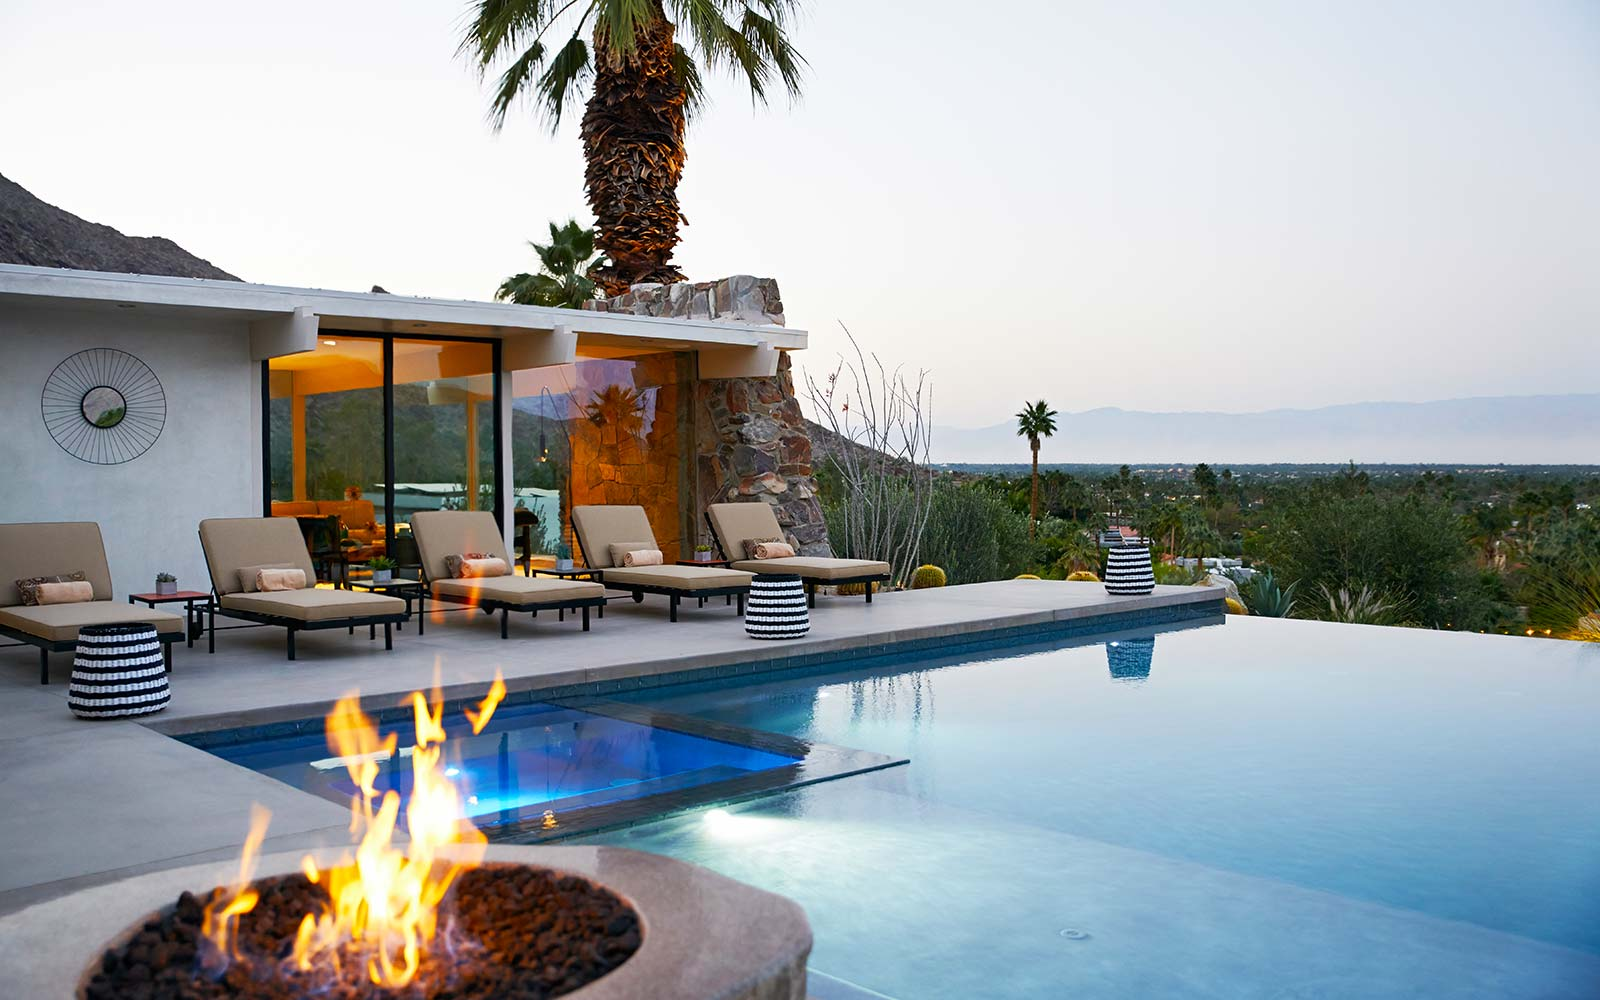 Natural Retreats Palm Springs California On the Rocks Hot Tub Vacation Holiday Home Rental